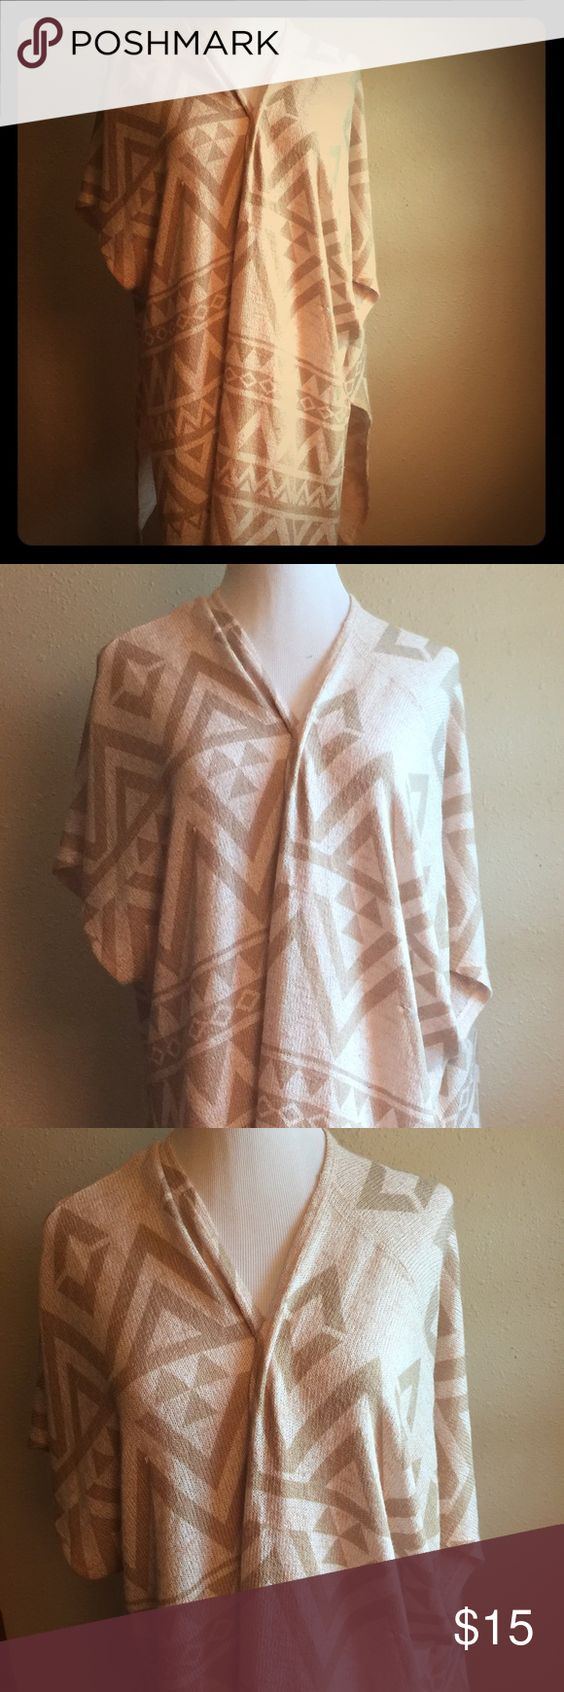 Charming Charlie Wrap Charming Charlie brand wrap sweater/poncho. Size Small. Charming Charlie Sweaters Shrugs & Ponchos